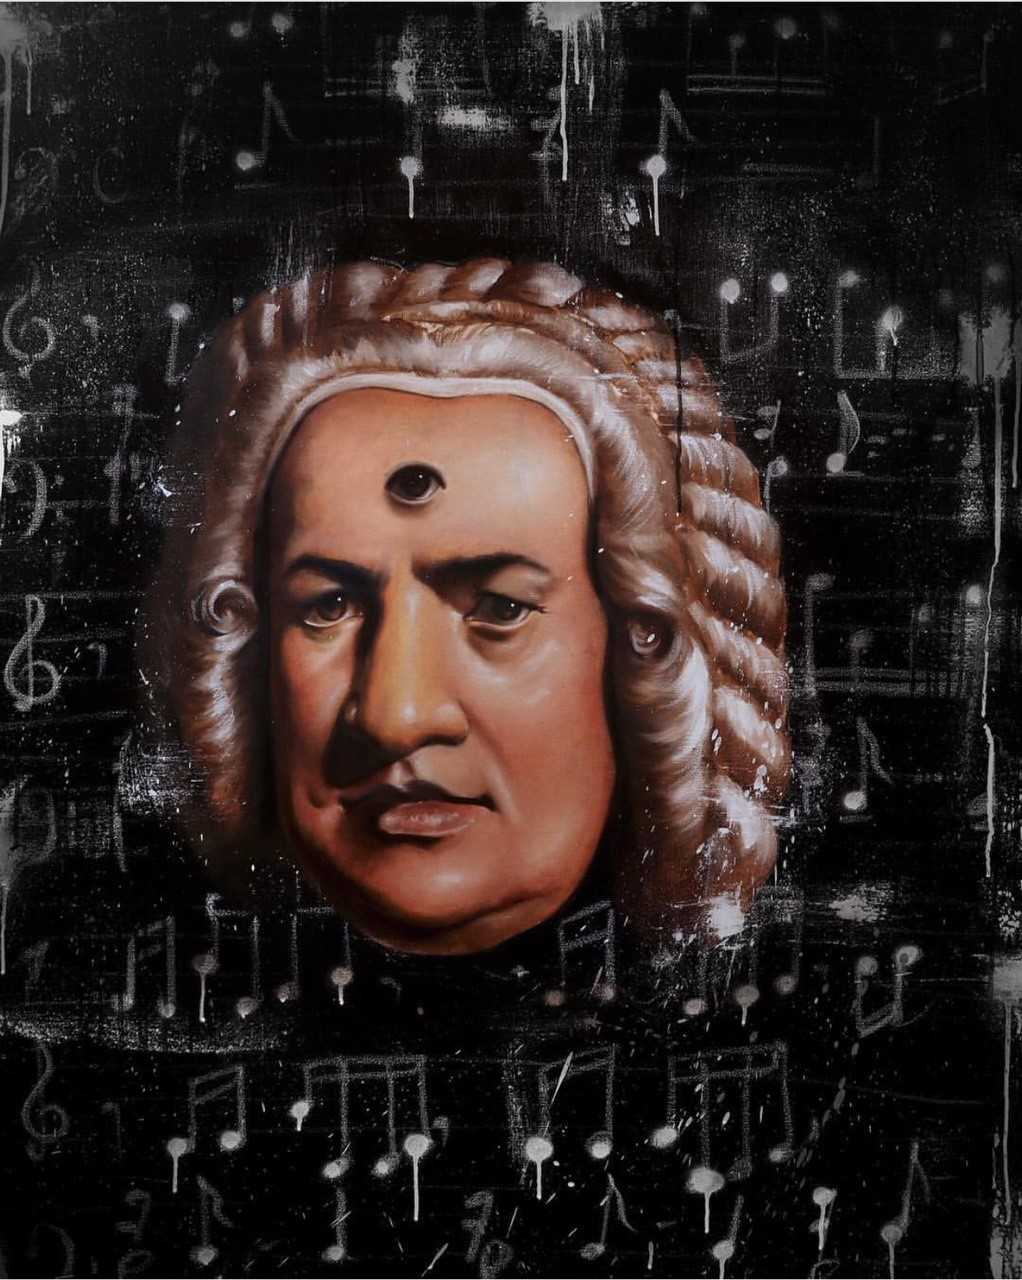 Bach's Third Eye, Isaac Pelayo